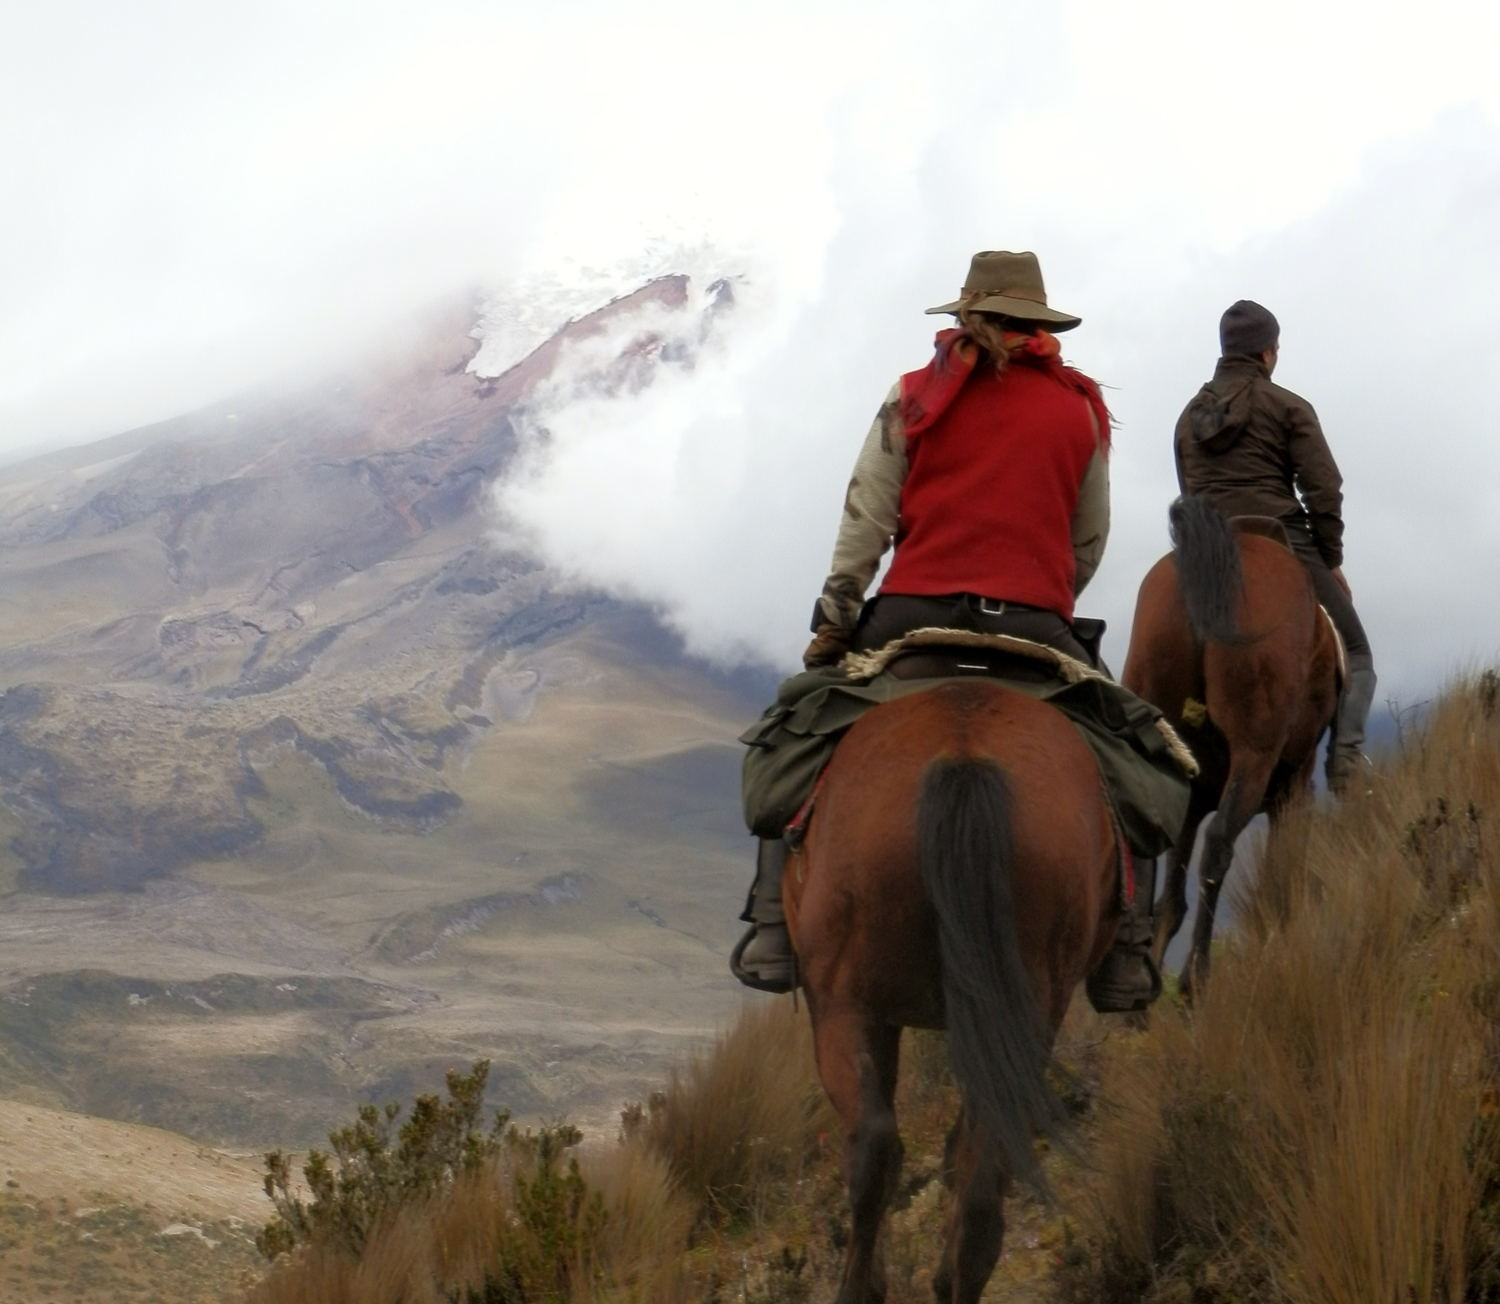 64. Day 3 Saly and Eran, approaching Cotopaxi - Copy.JPG